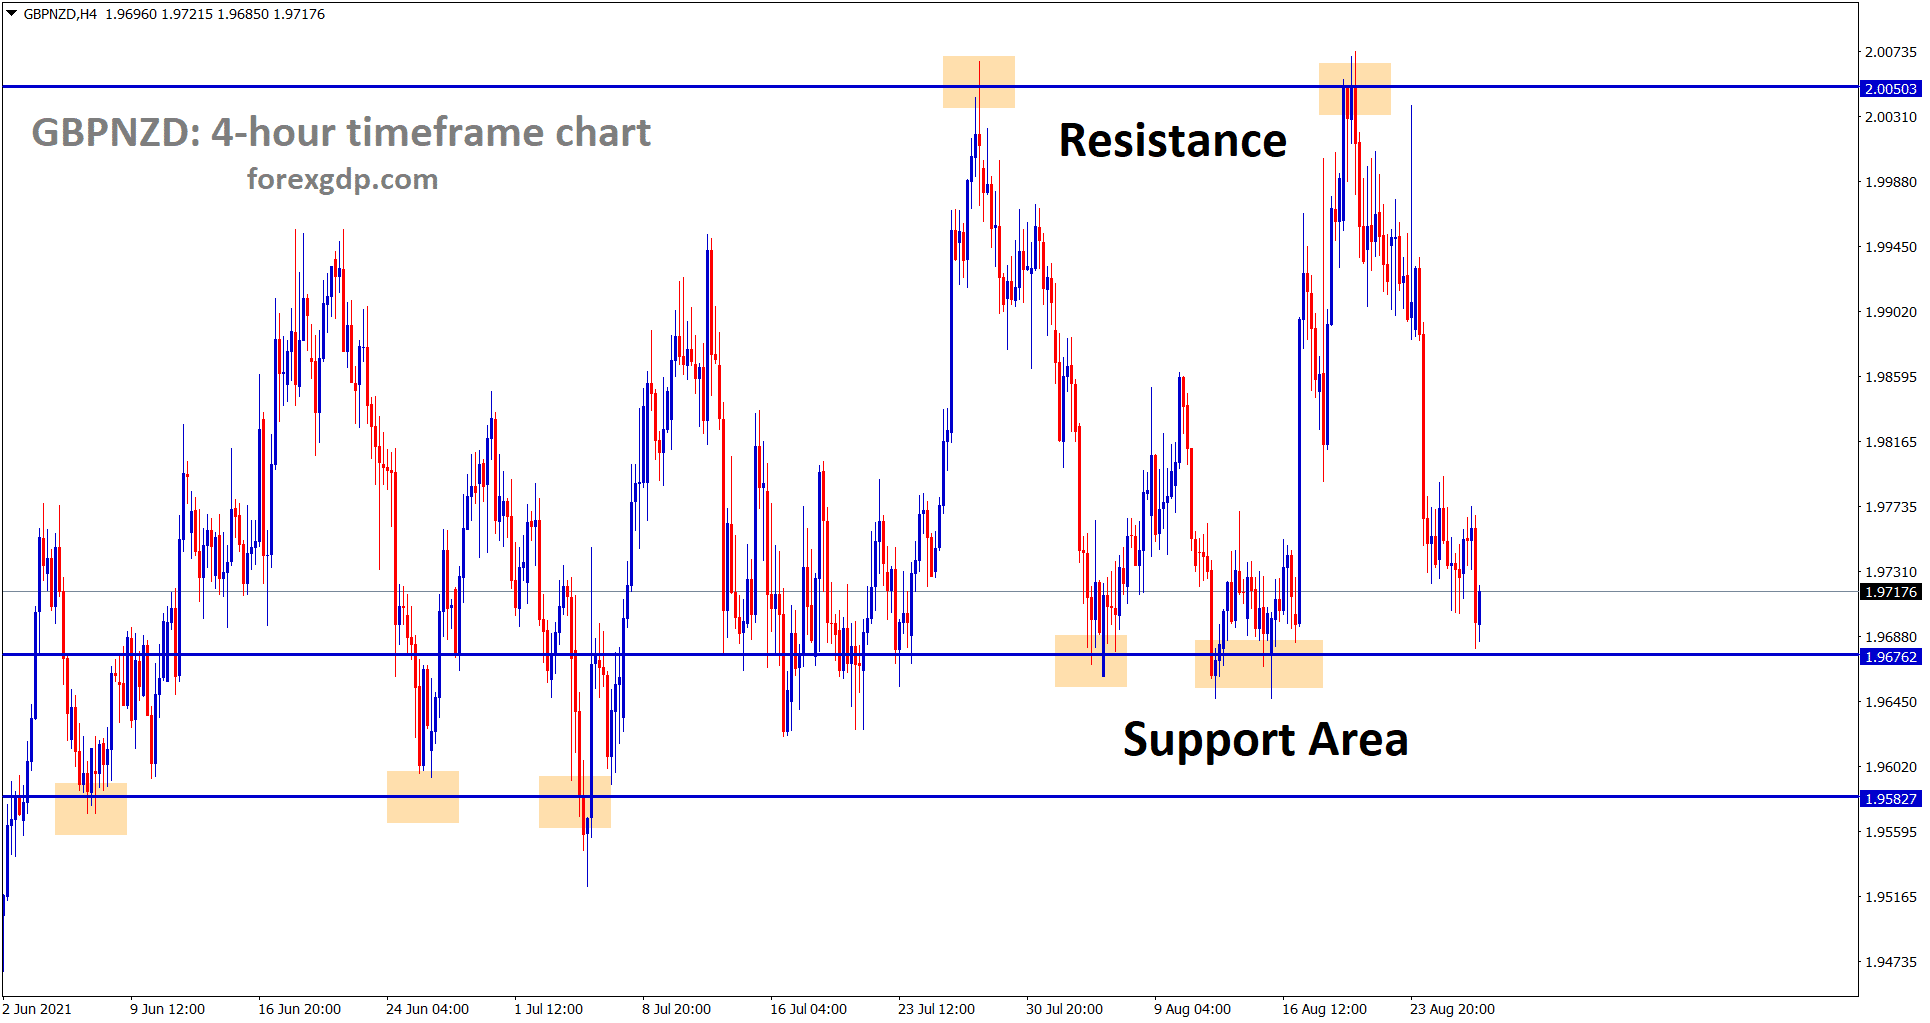 GBPNZD hits the support area again wait for reversal or breakout